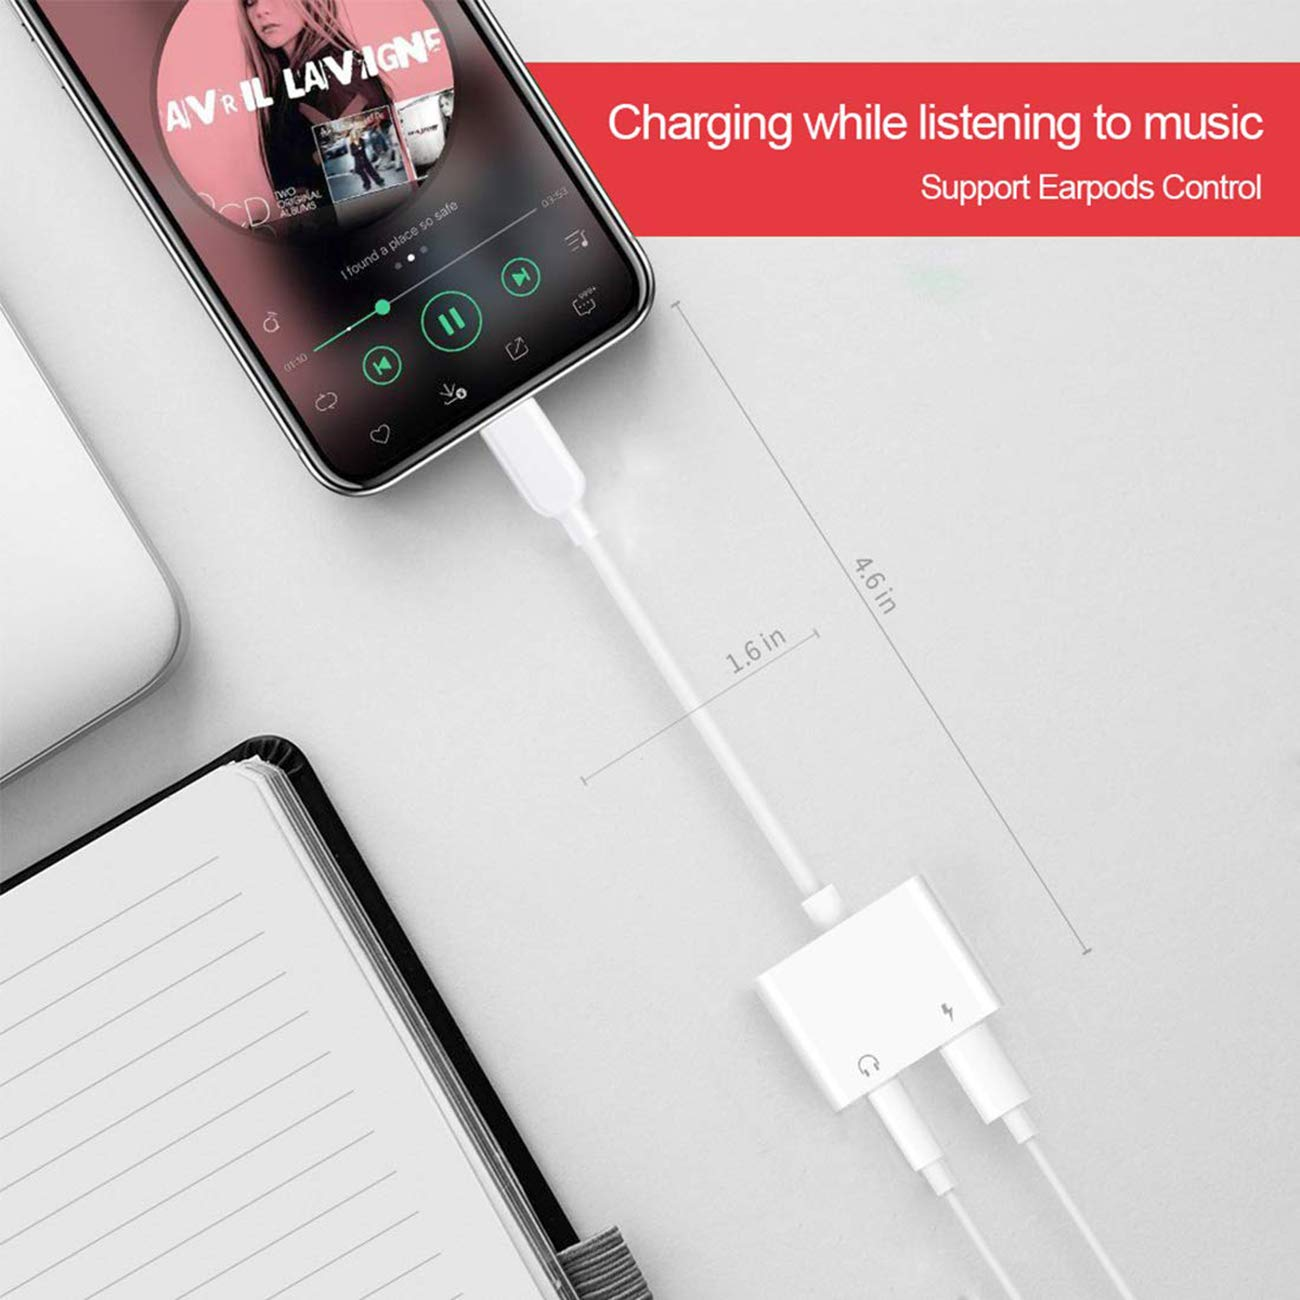 Headphone Adapter 3.5mm Jack Adaptor Charger for iPhone 8//8Plus for iPhone7//7Plus//X//10//Xs//XSmax,Earphone 3.5mm Adaptor Cable AUX Audio/&Wire Control Headset Extender Connector Support iOS 10.20 Syste